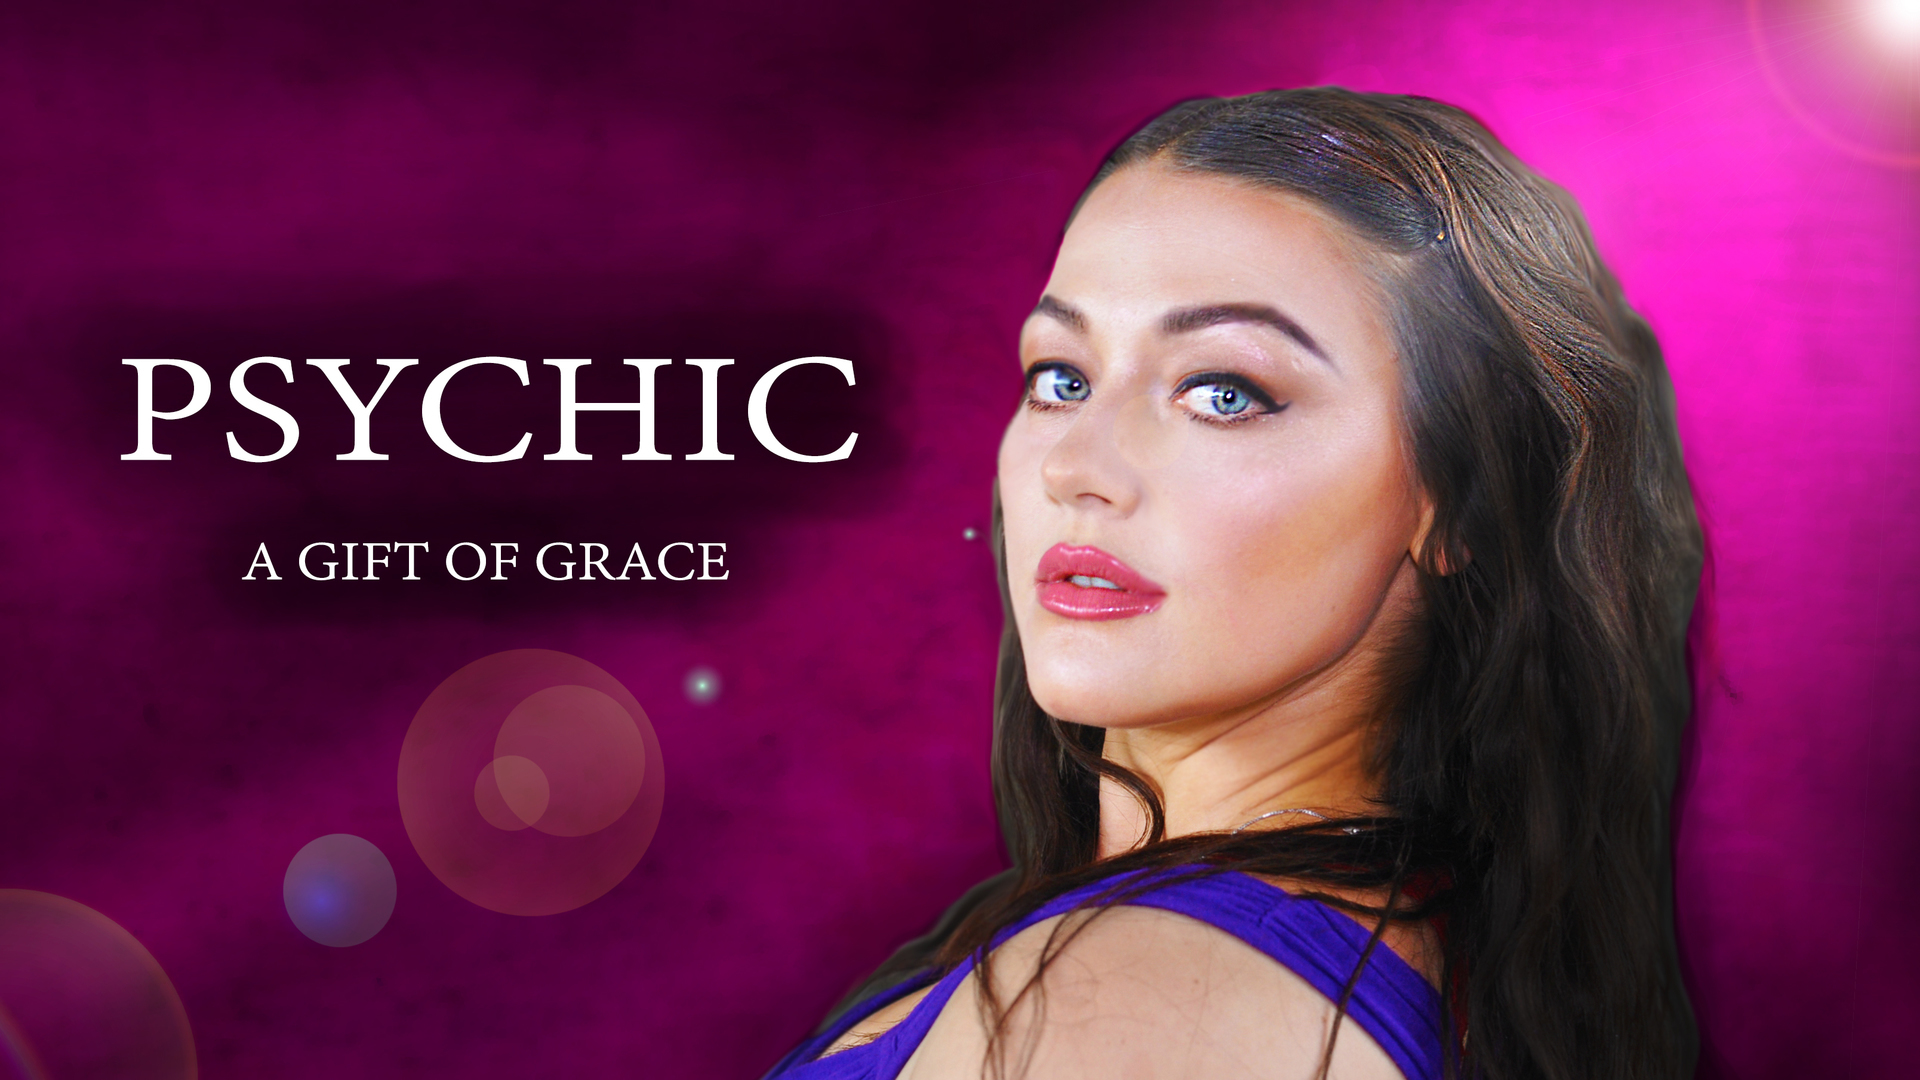 Psychic: A Gift Of Grace